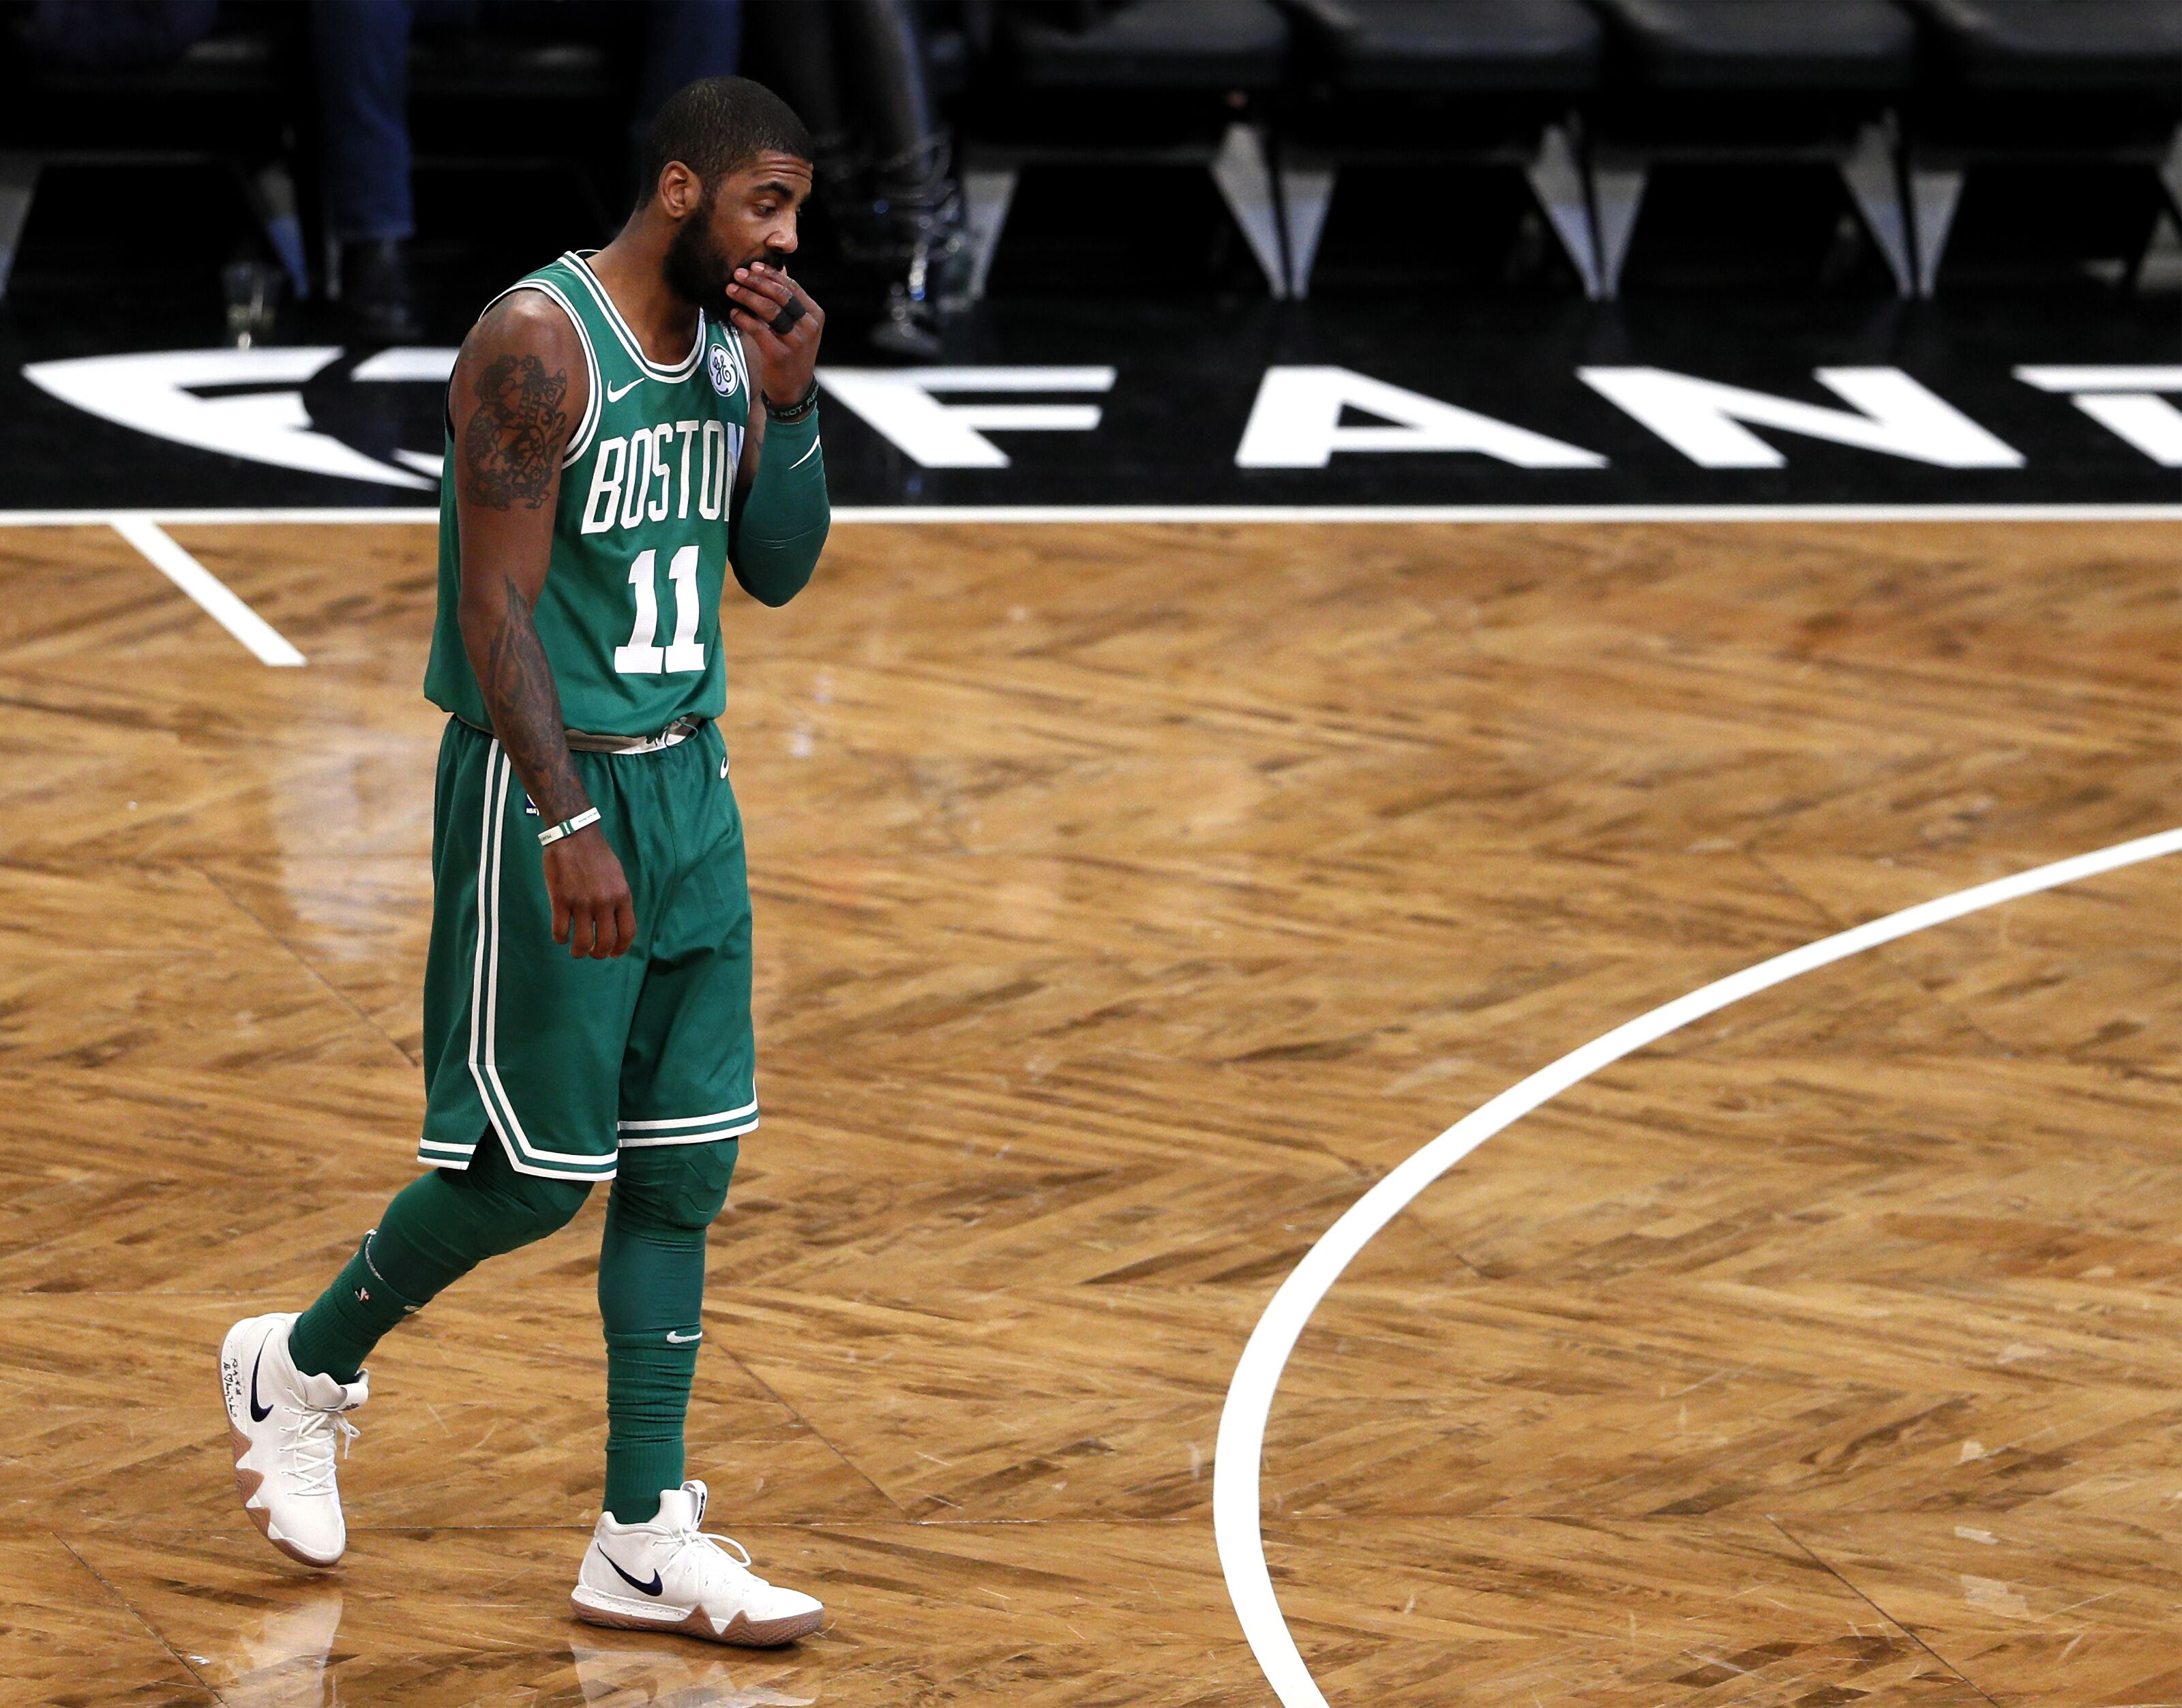 Brooklyn Nets Was Kyrie Irving S Ranking In The Nba Top 100